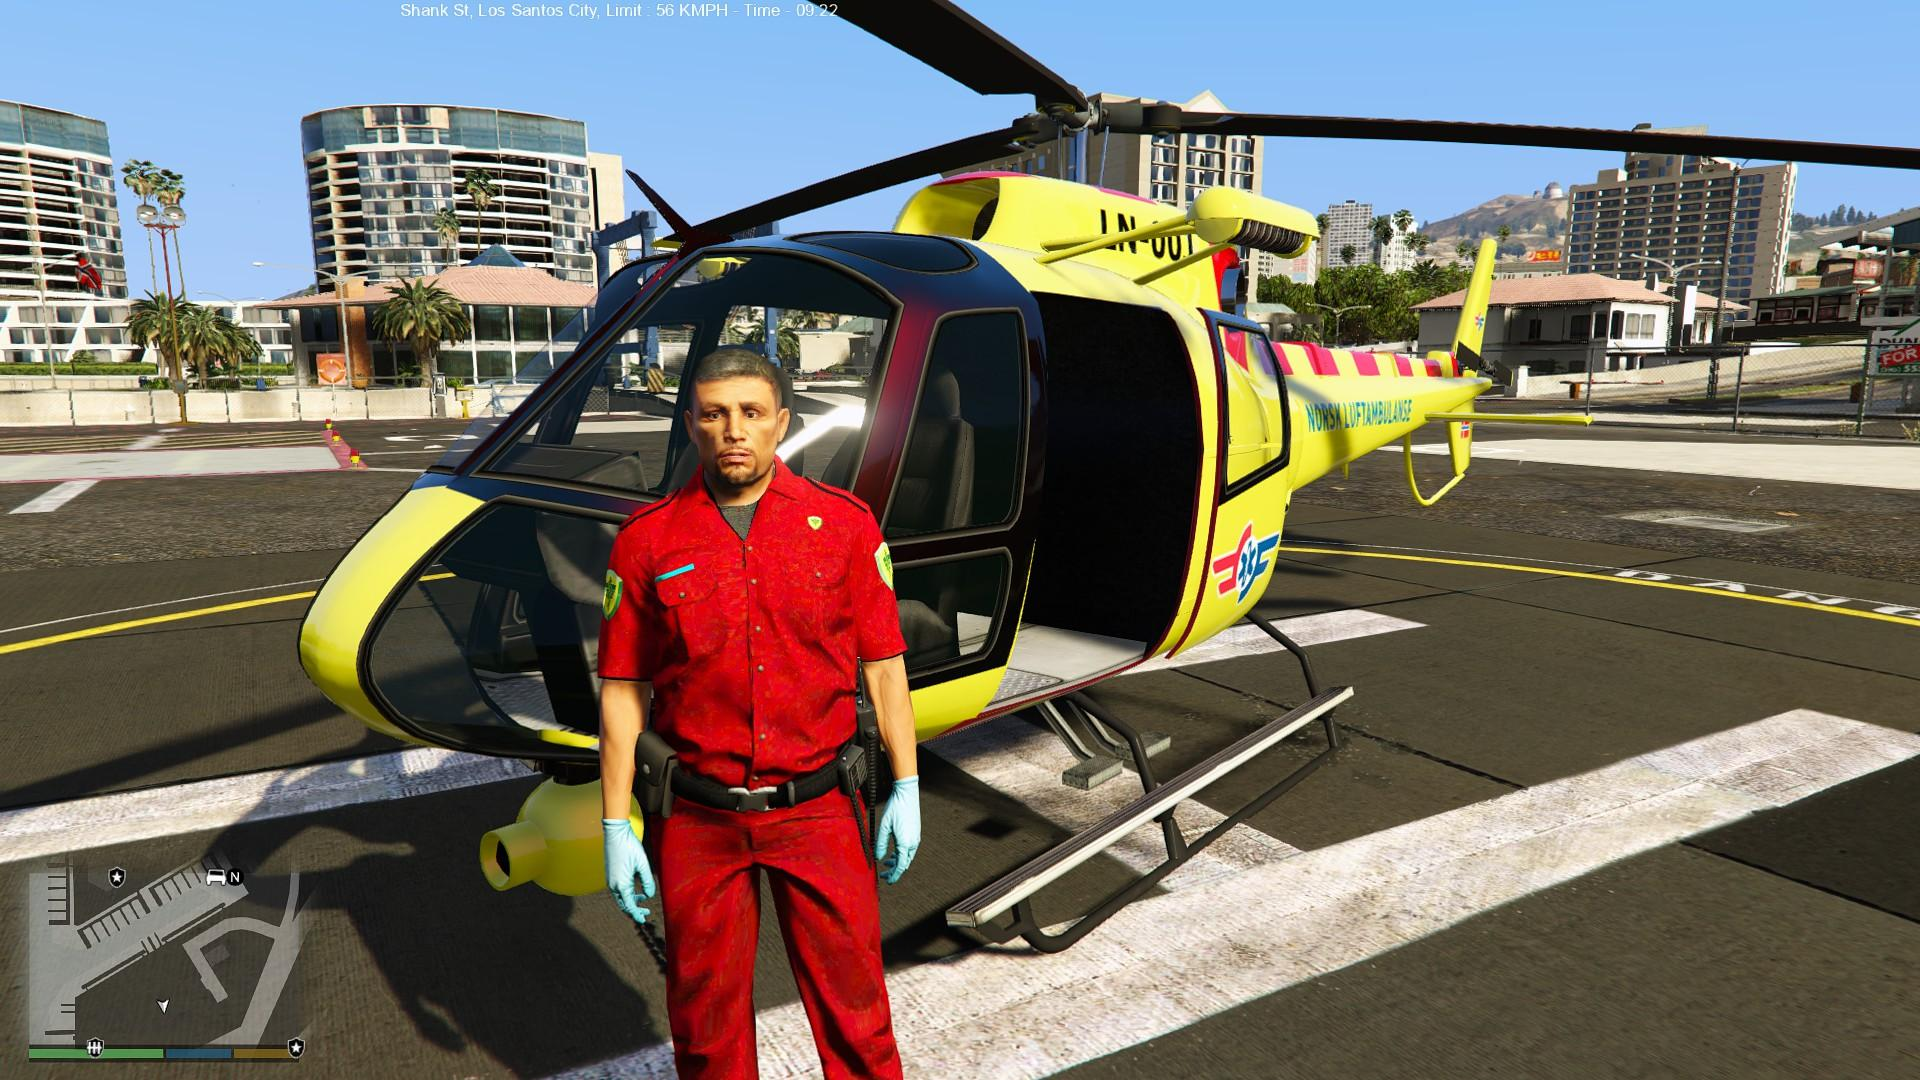 helicopter paramedic with Norwegian Air Ambulance Paramedic on 1920x1080 besides A Female Flight Medic furthermore Ambulance Logo qqaDm2sOyCmbnVLZUmtt5K7ov547fJWW9gagAXt 7CS9U further Ambulance Coloring Pages also File NZ sea rescue.